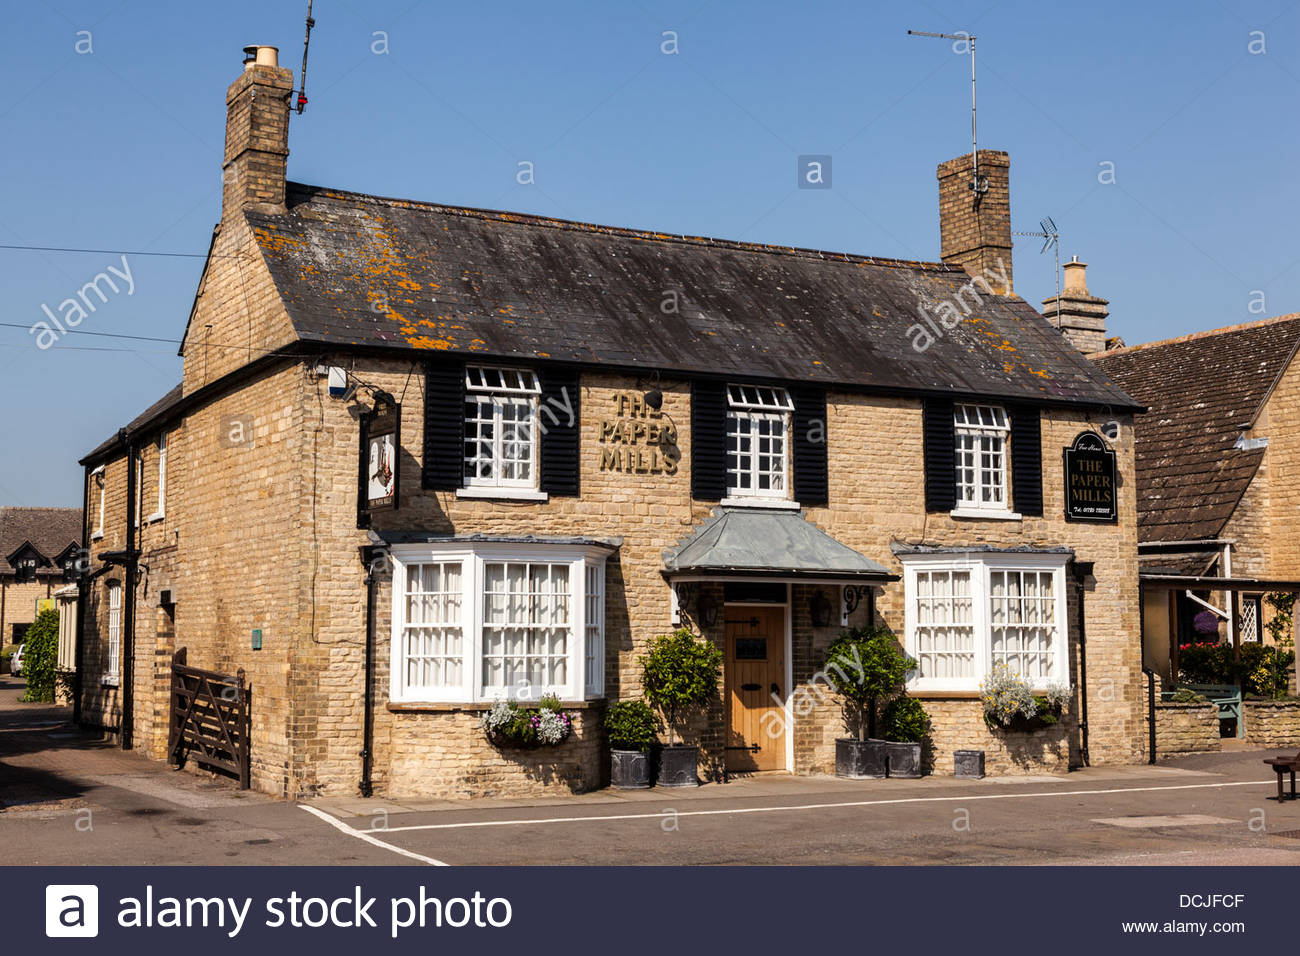 Paper Mills pub and restaurant in Wansford, Cambridgeshire, England, UK - Stock Image